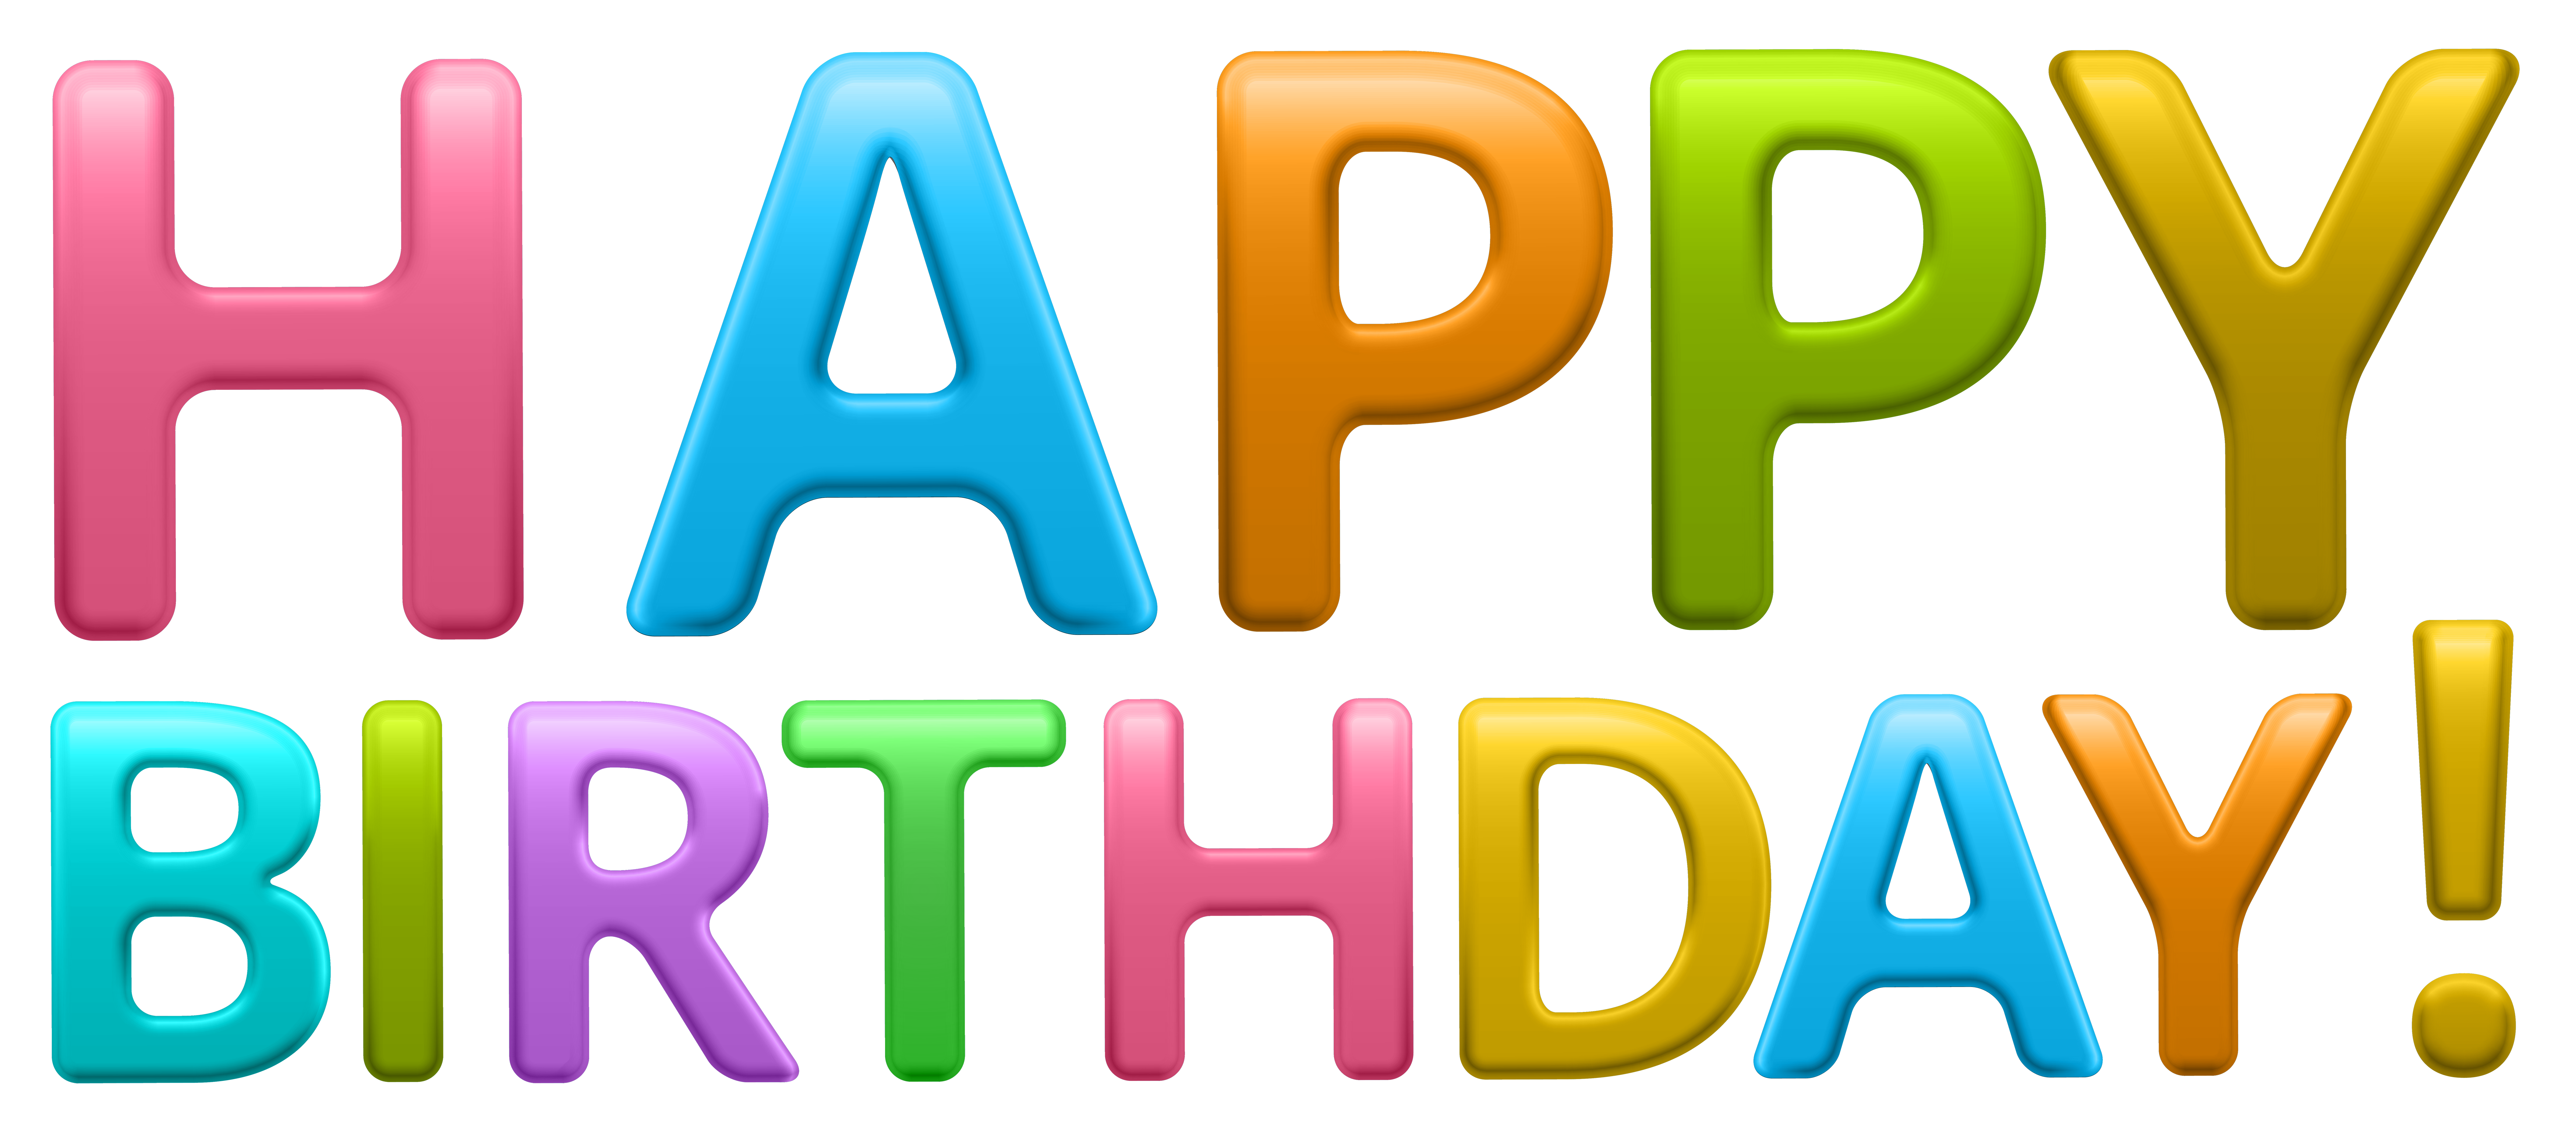 Words clipart happiness. Colorful happy birthday transparent